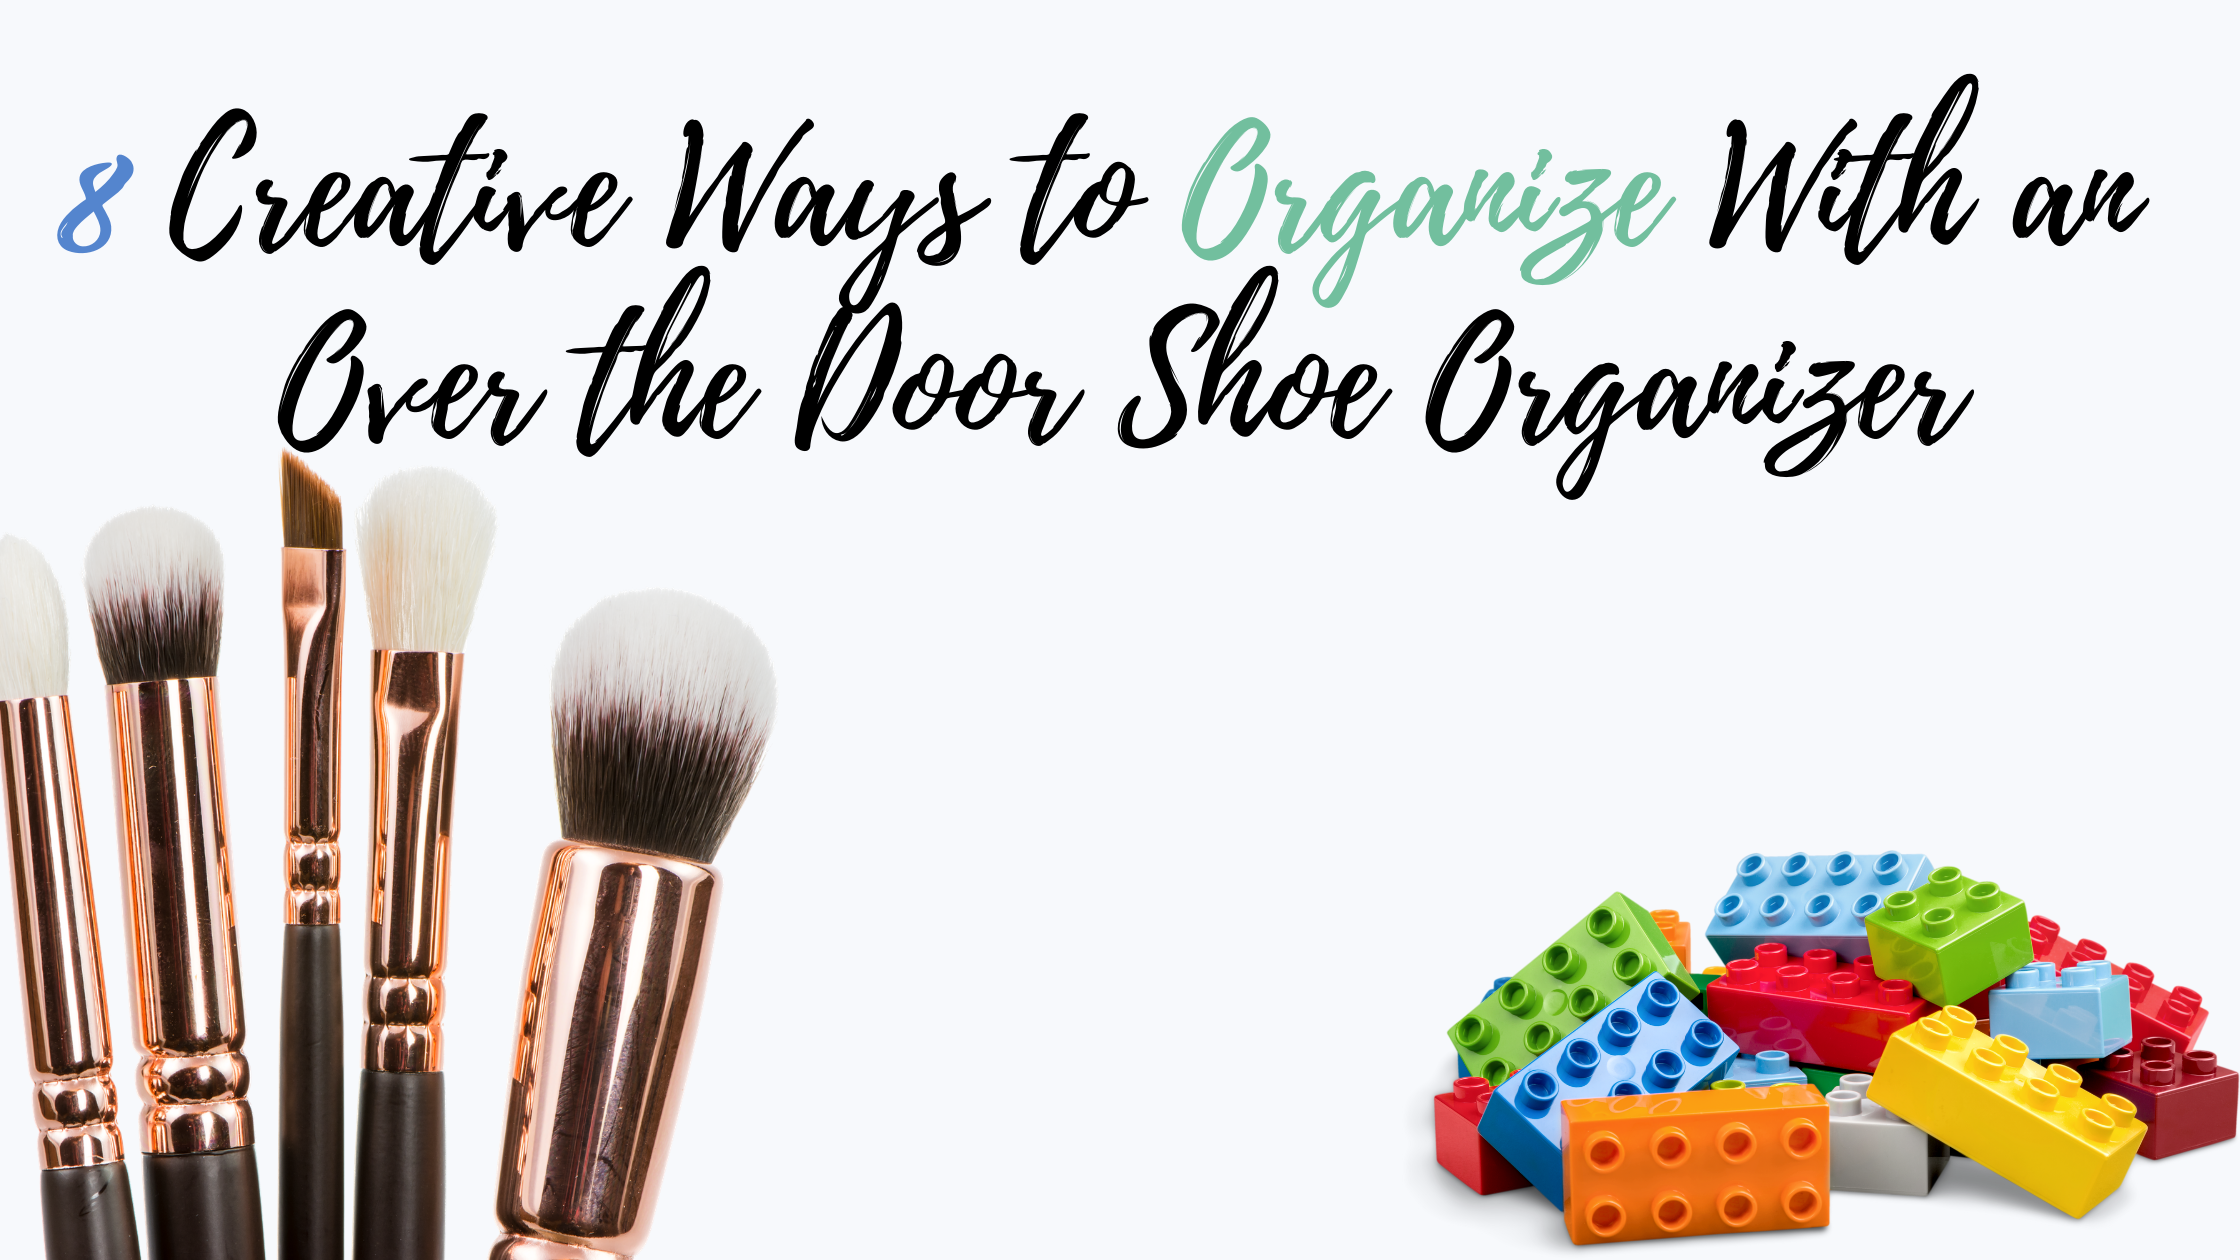 Creative Ways to Organize with a Shoe Organizer